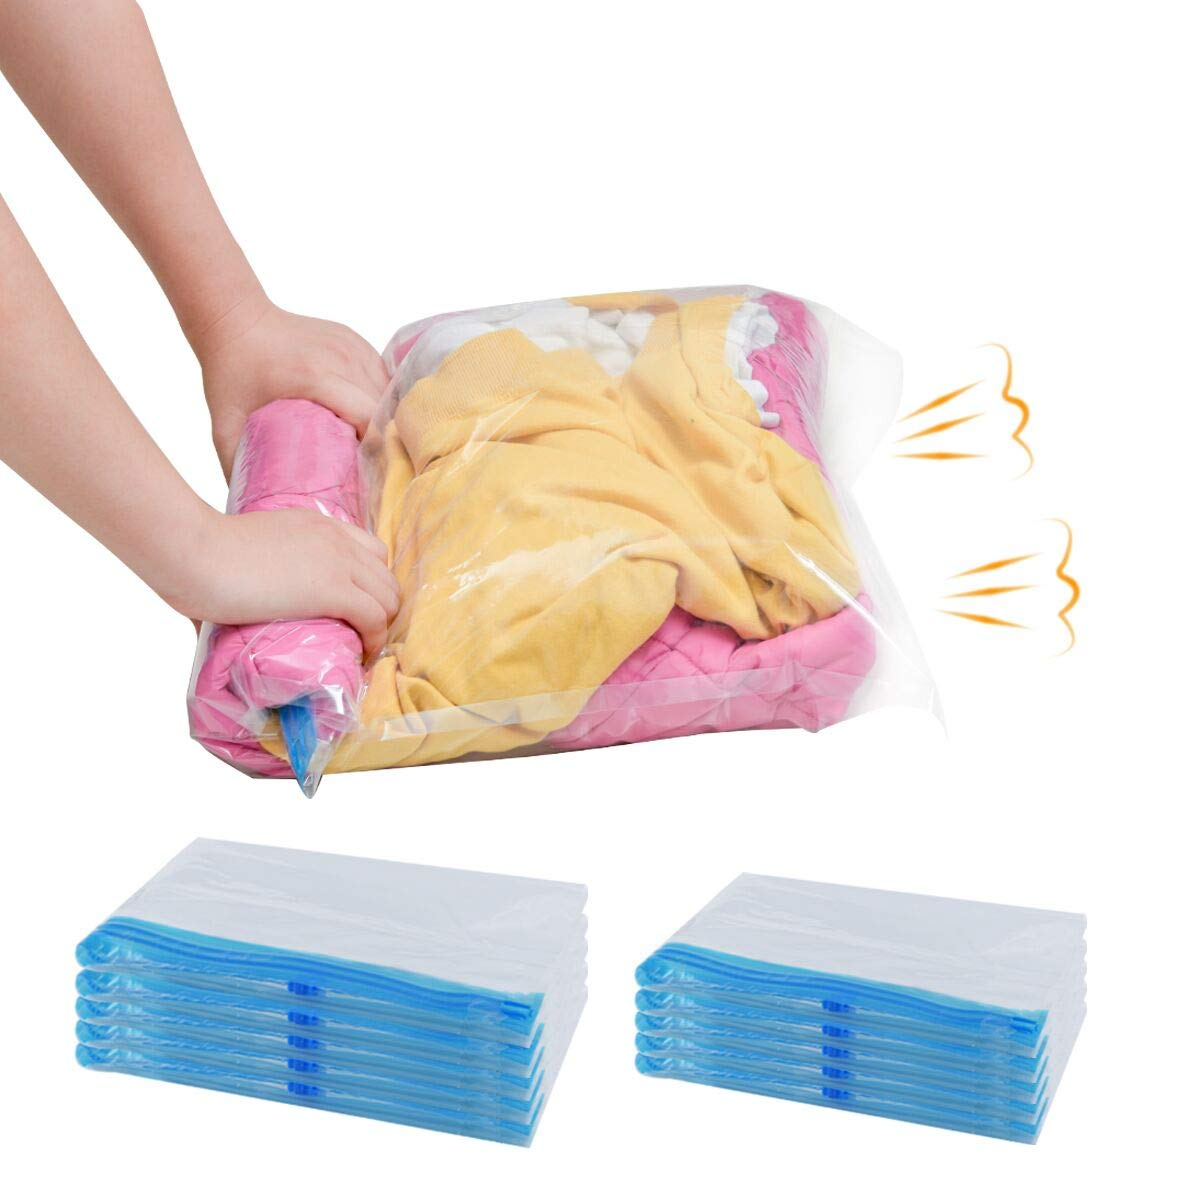 GONGSHI 10 Travel Space Saver Storage Bags (5 X-Large,5 Large), Roll Up Compression, No Need Vacuum Machine,Ideal for Home and Luggage Organizer